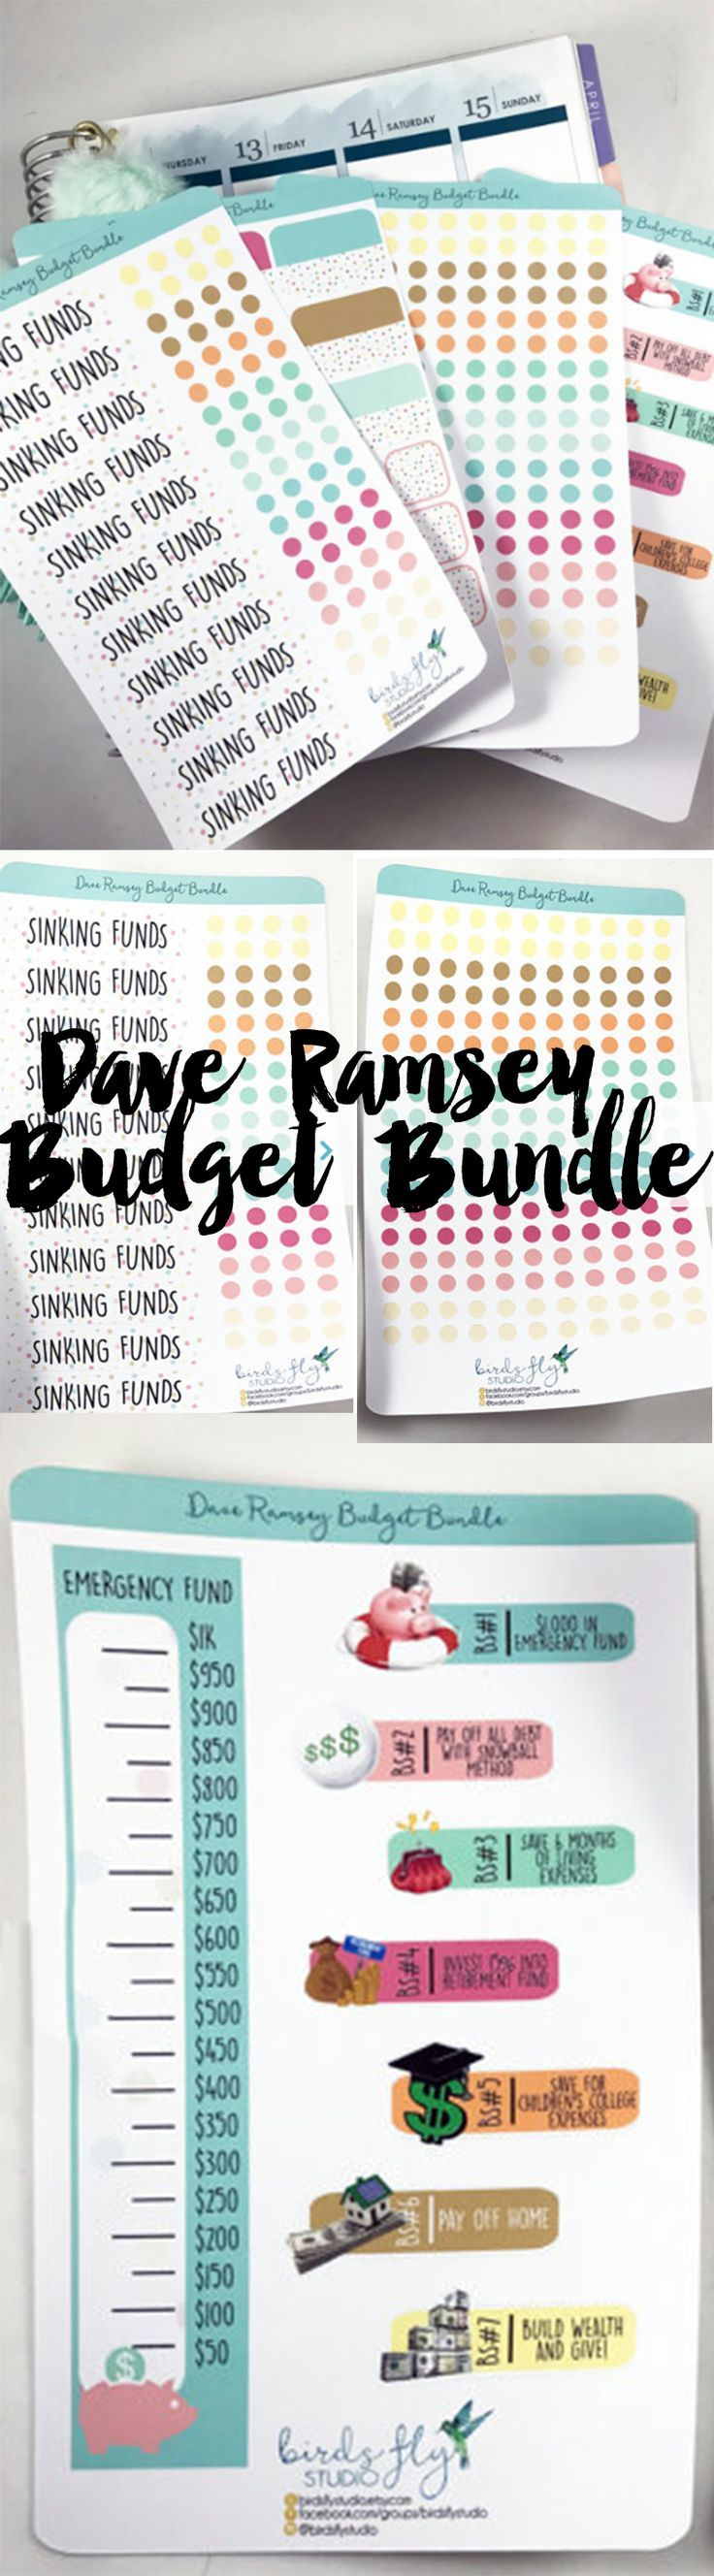 Love these! Dave Ramsey Planner stickers!